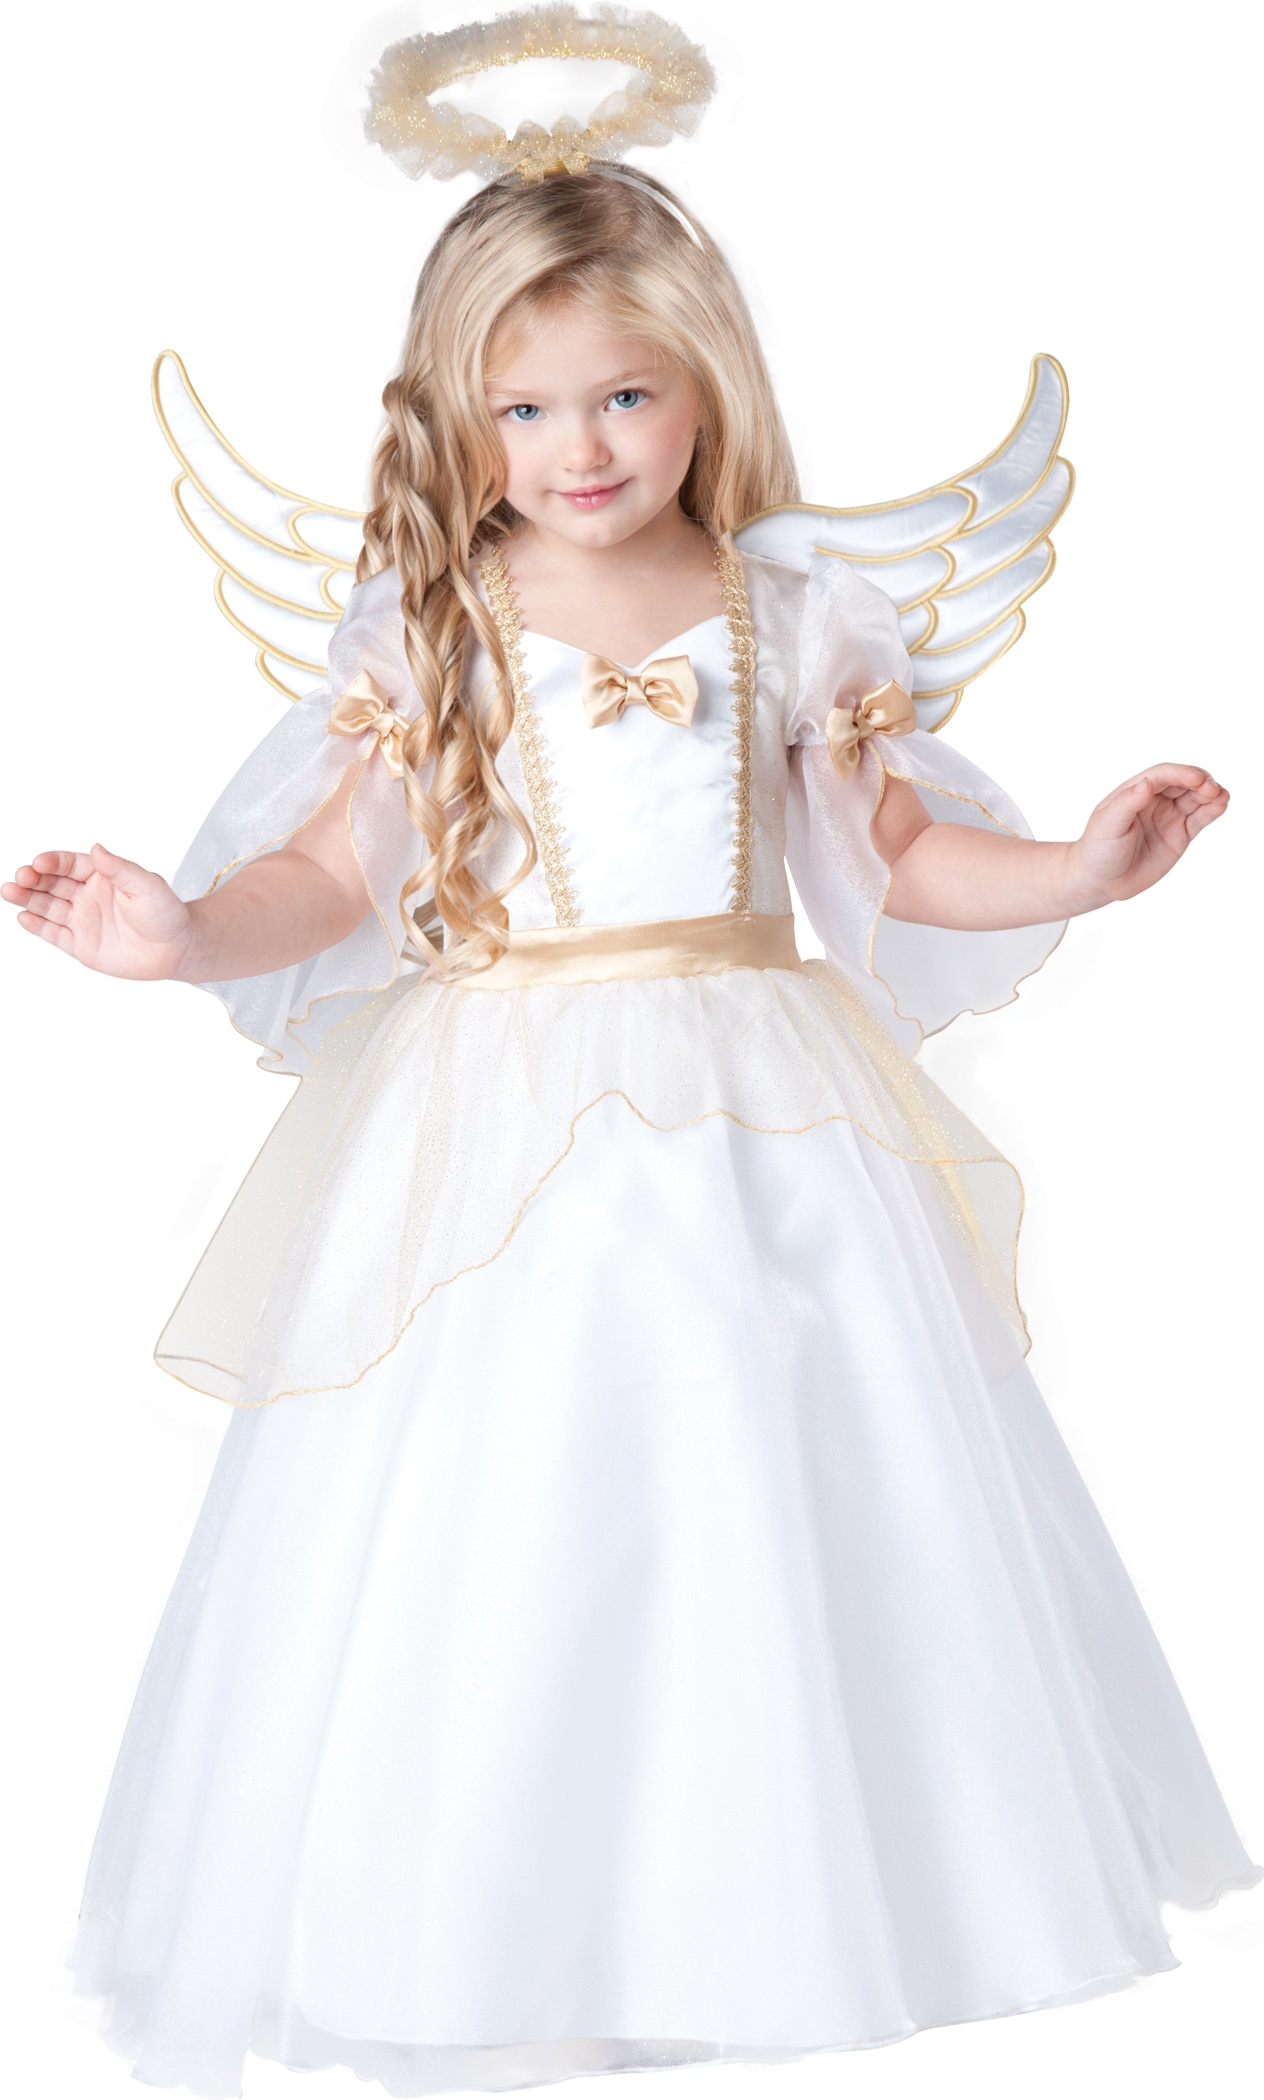 Angelic angel toddler kids costume mr costumes - Disfraz de angelito para nina ...